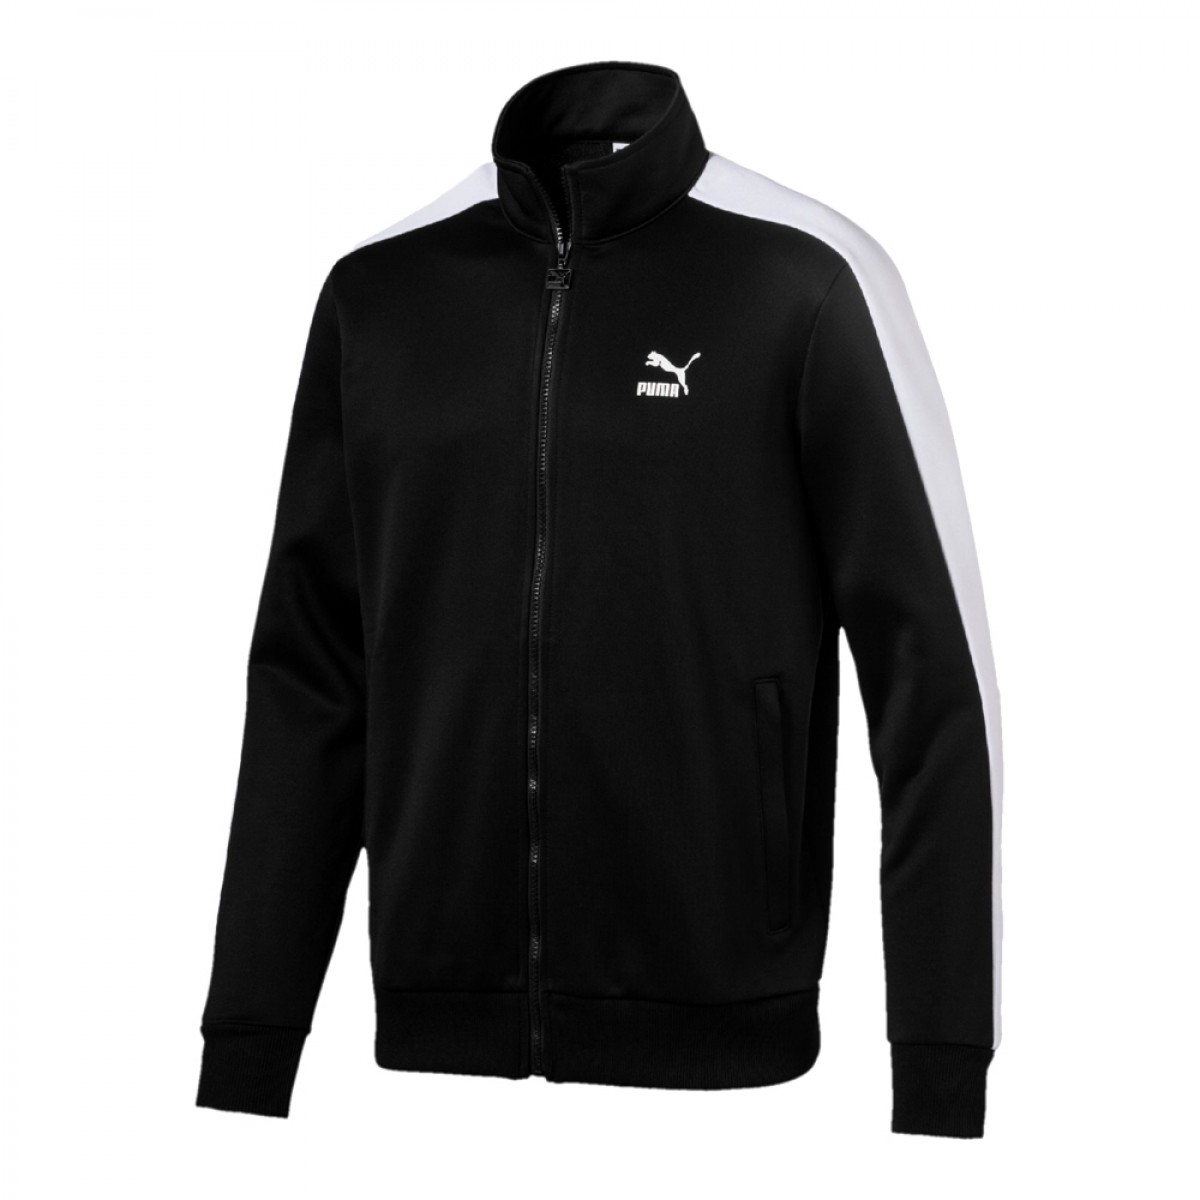 Archive T7 track jacket Puma Black